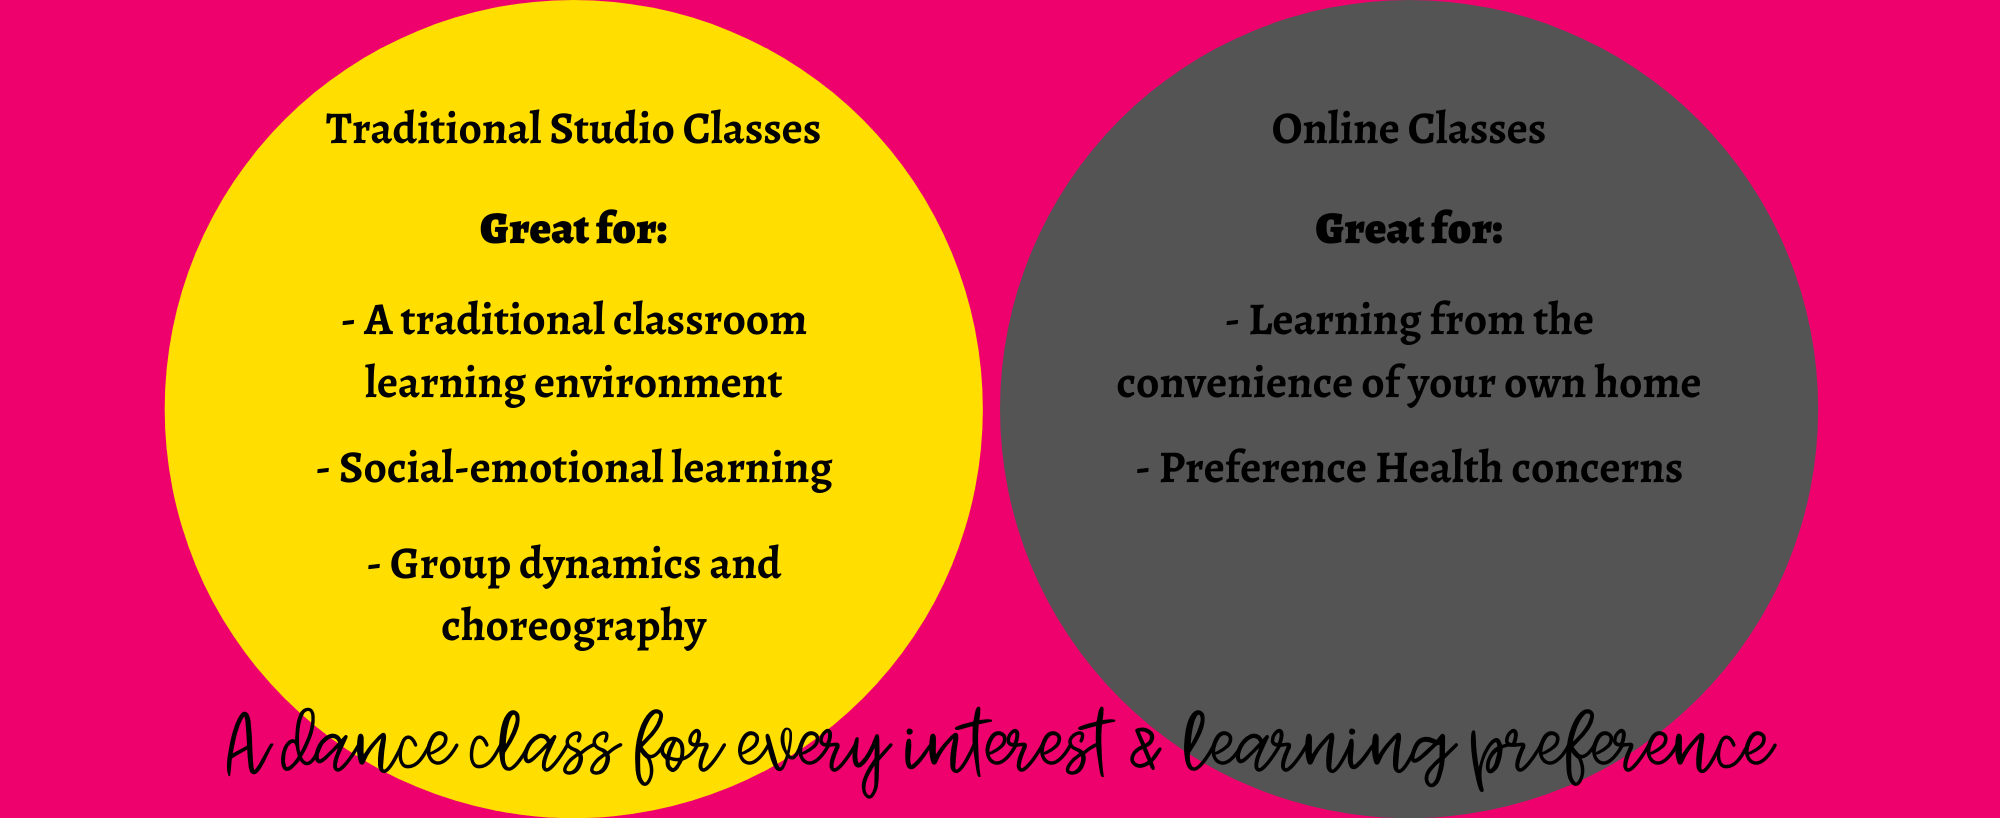 A dance class for every interest & learning preference